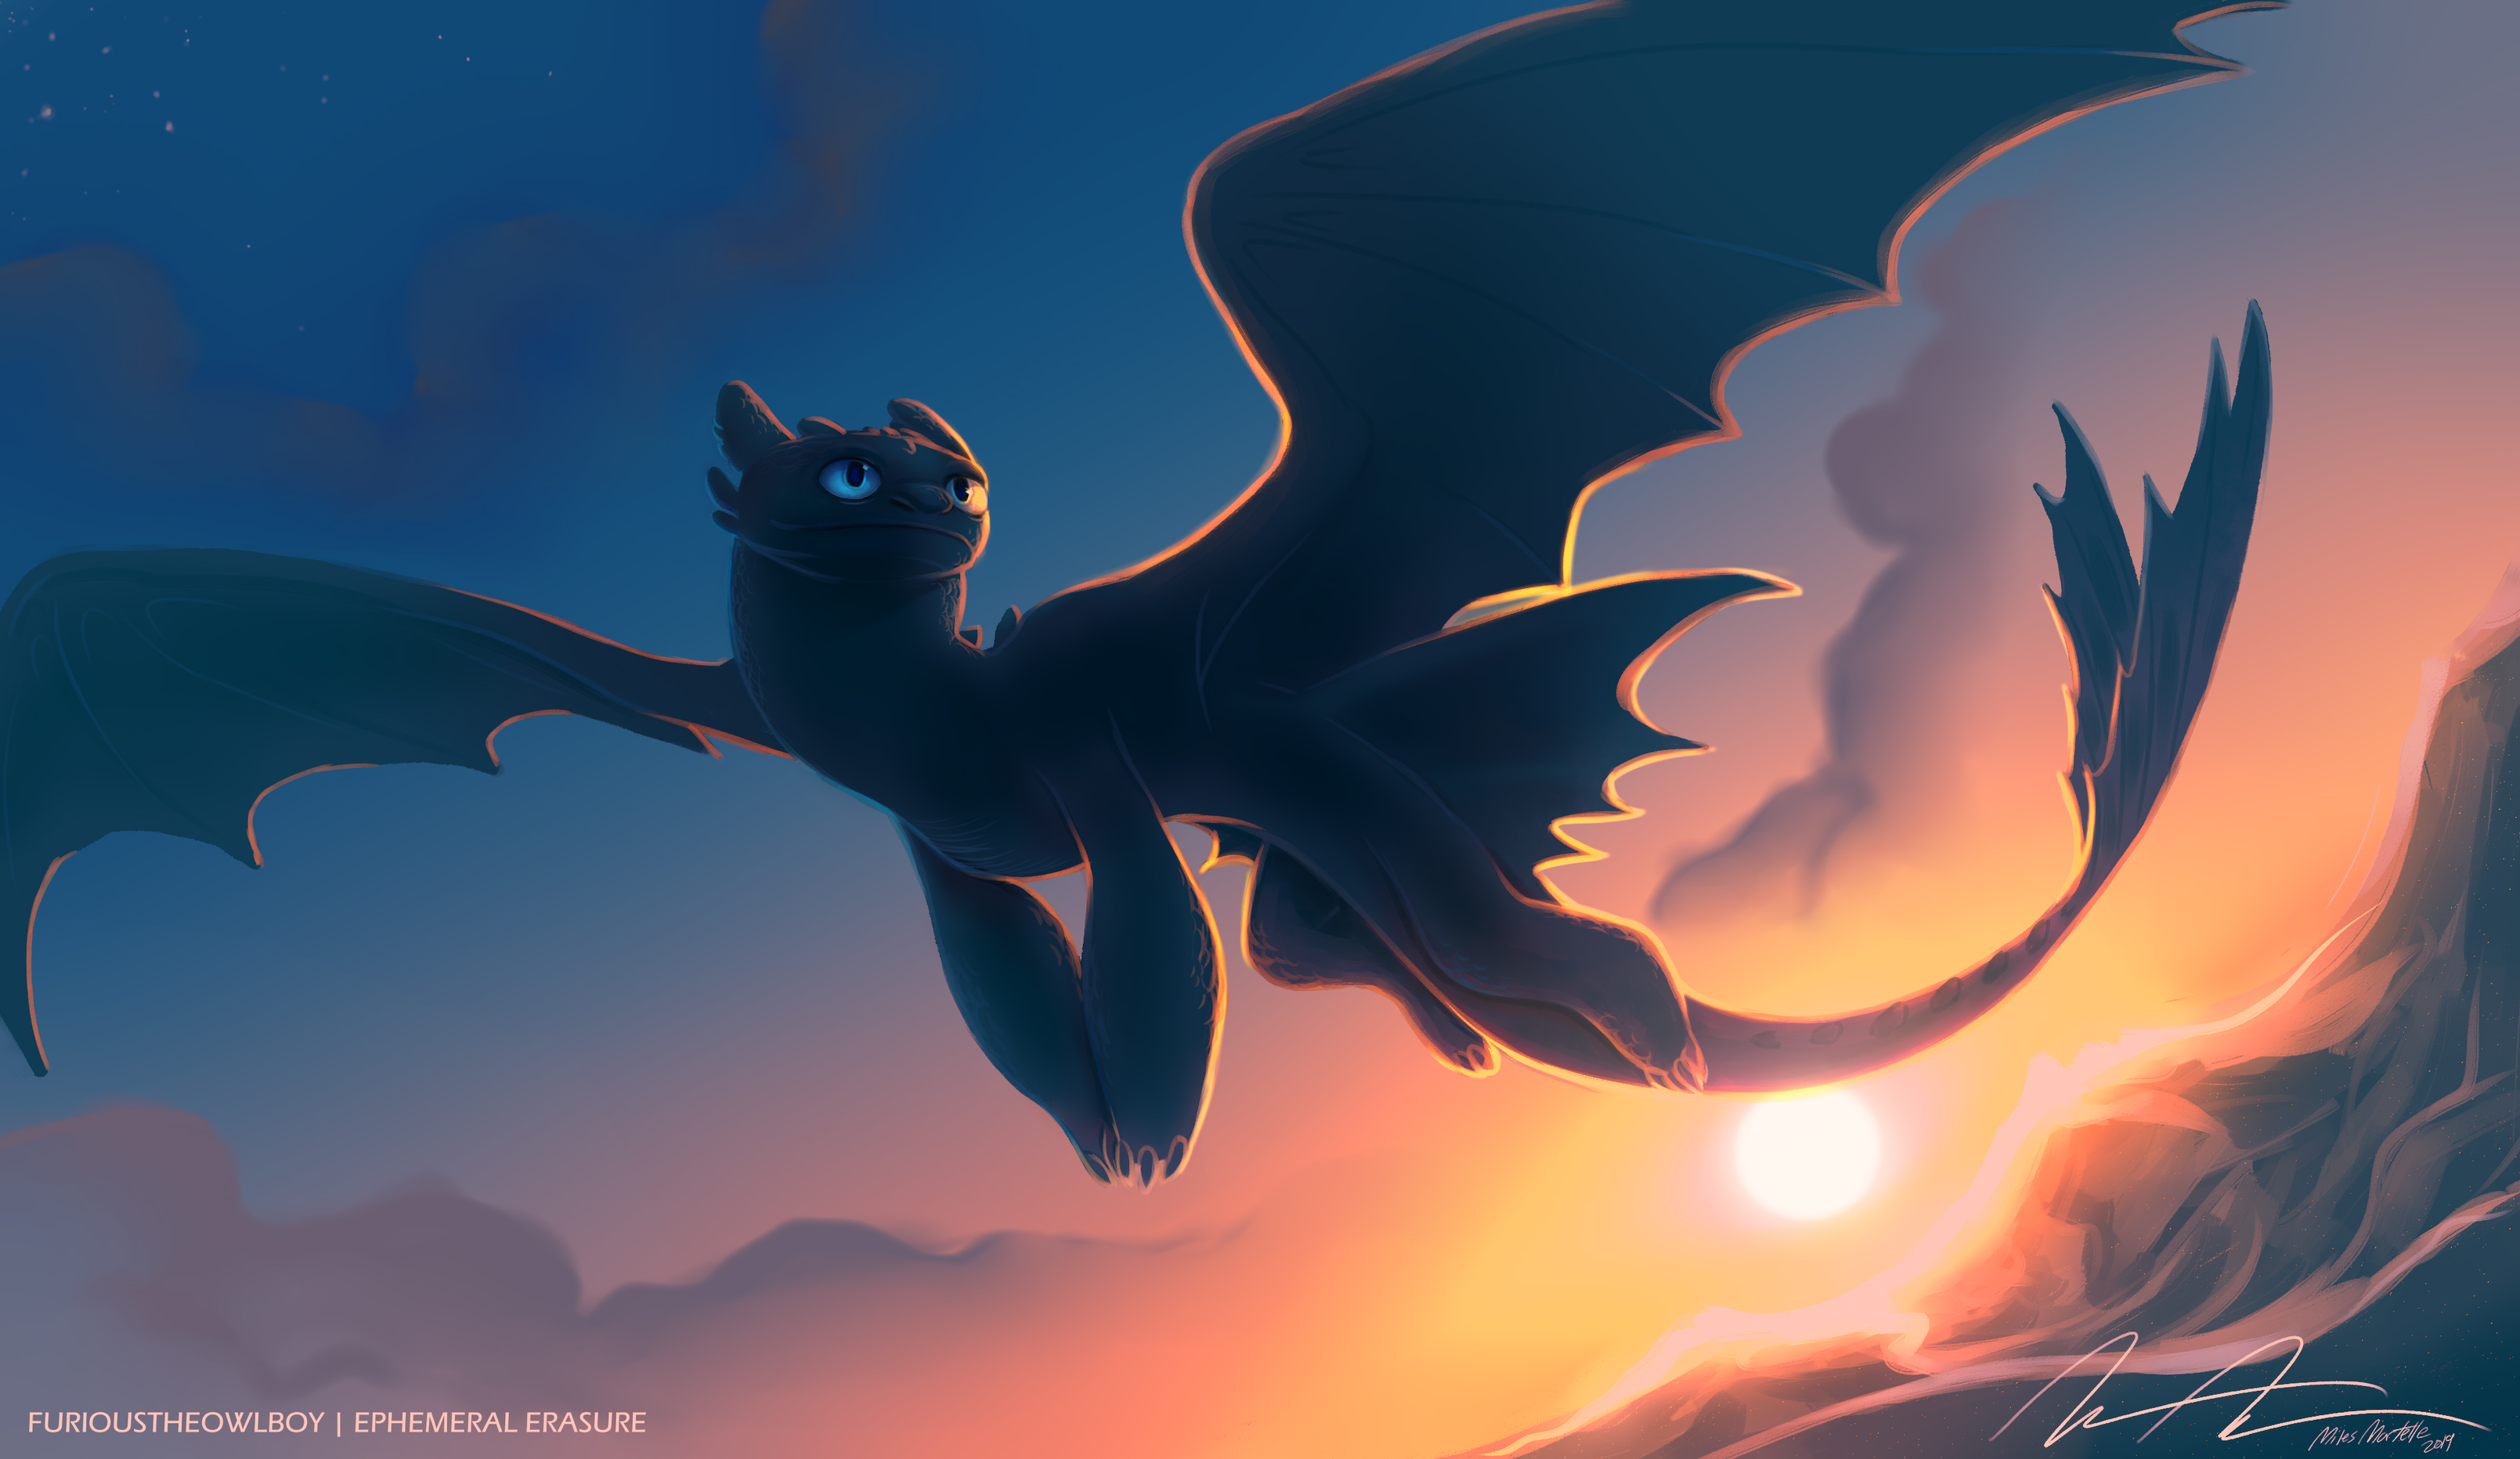 Night fury toothless 4k hd movies 4k wallpapers images - Toothless wallpaper ...